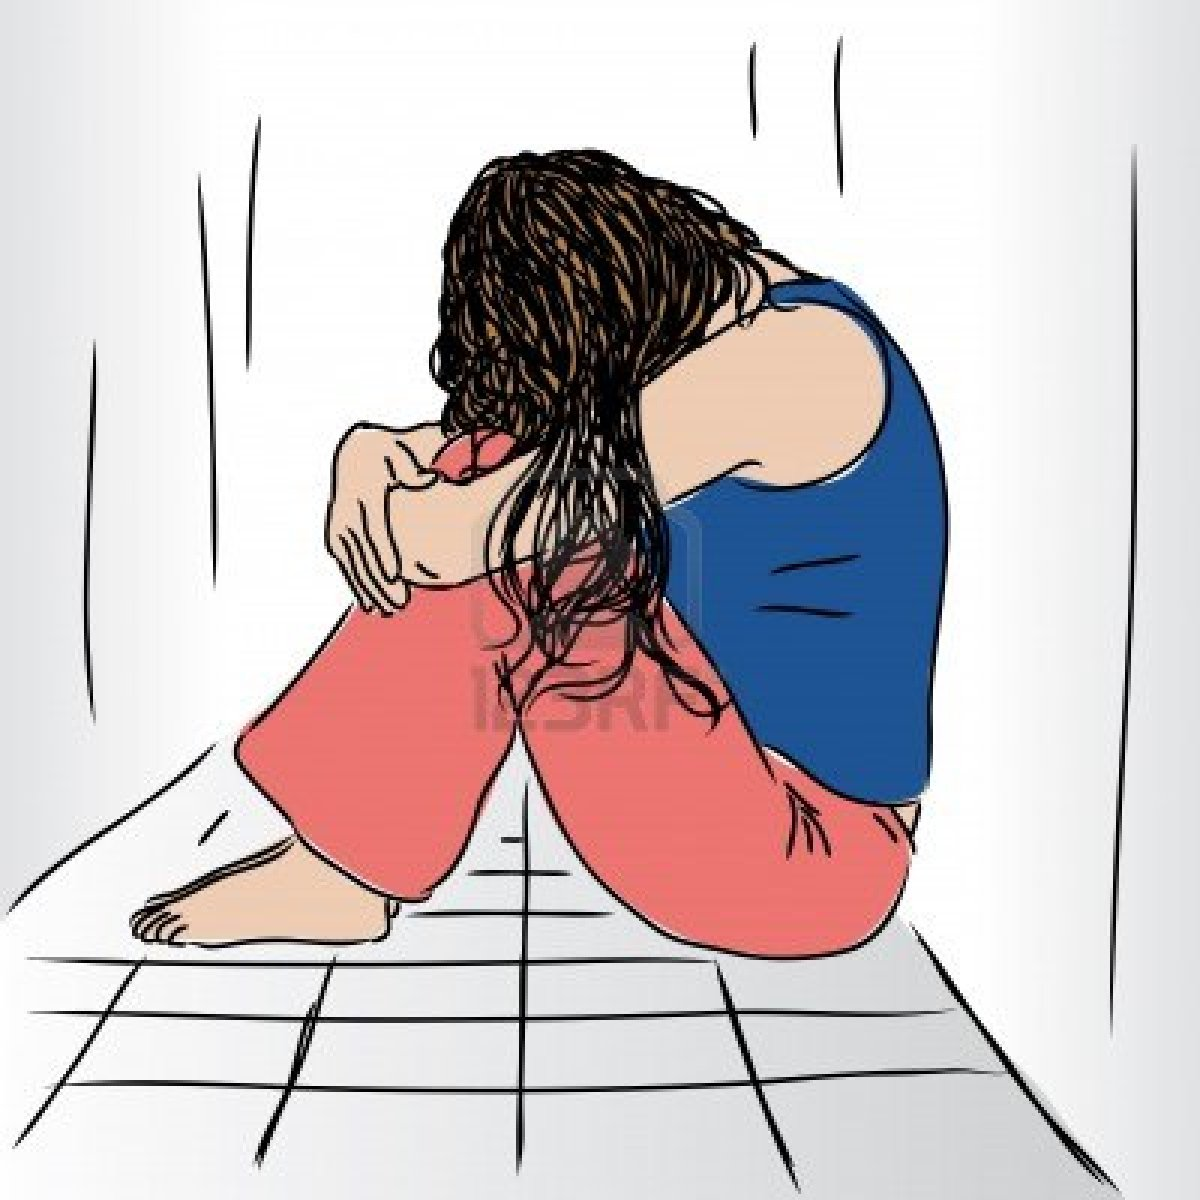 free clipart images depression - photo #17